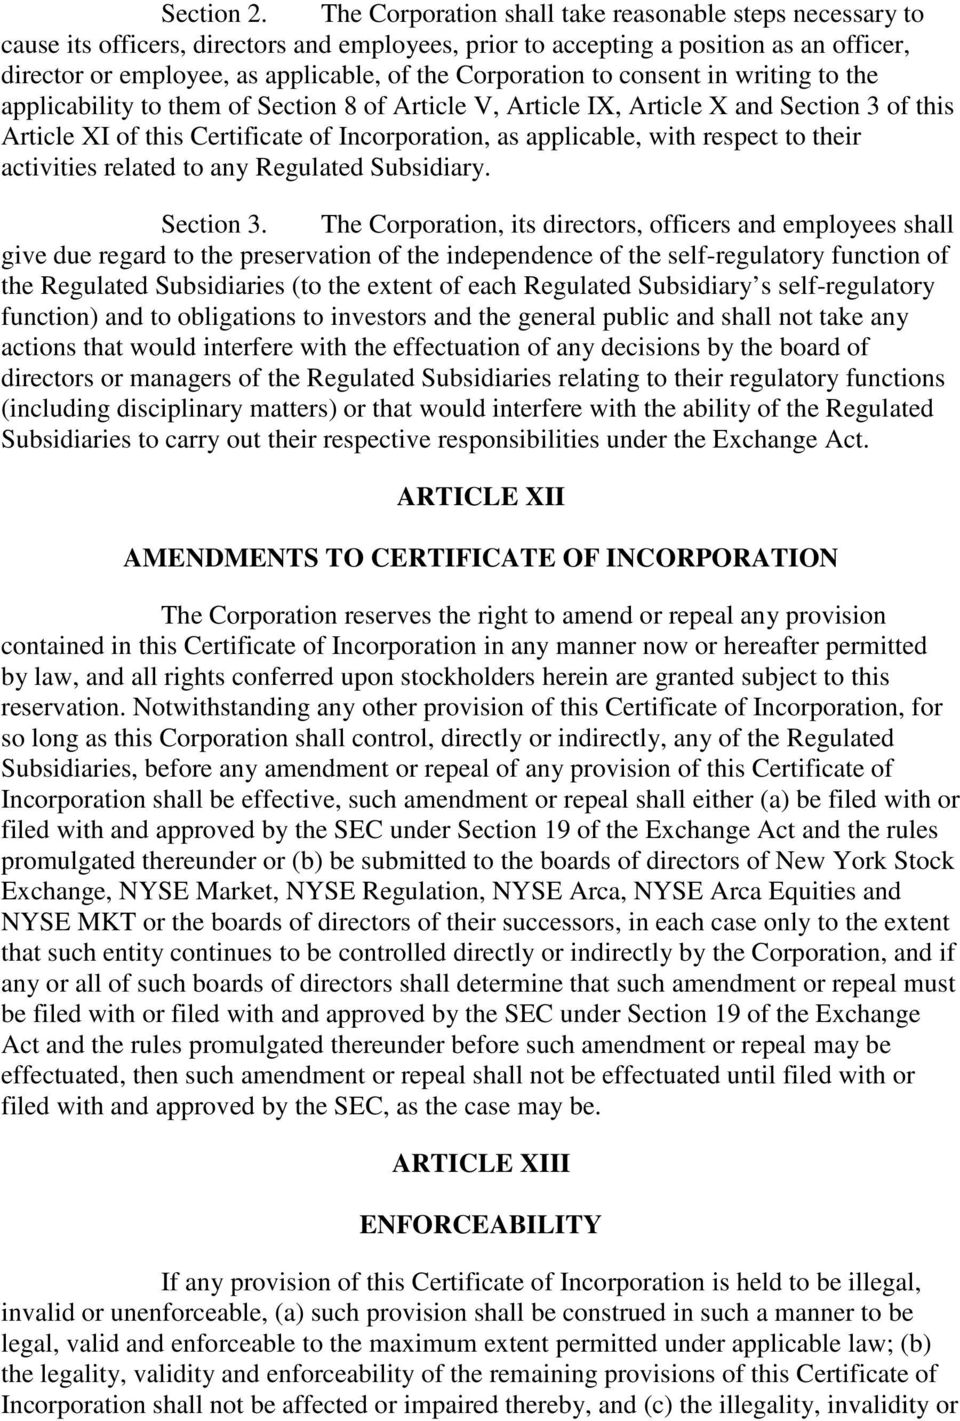 Corporation to consent in writing to the applicability to them of Section 8 of Article V, Article IX, Article X and Section 3 of this Article XI of this Certificate of Incorporation, as applicable,